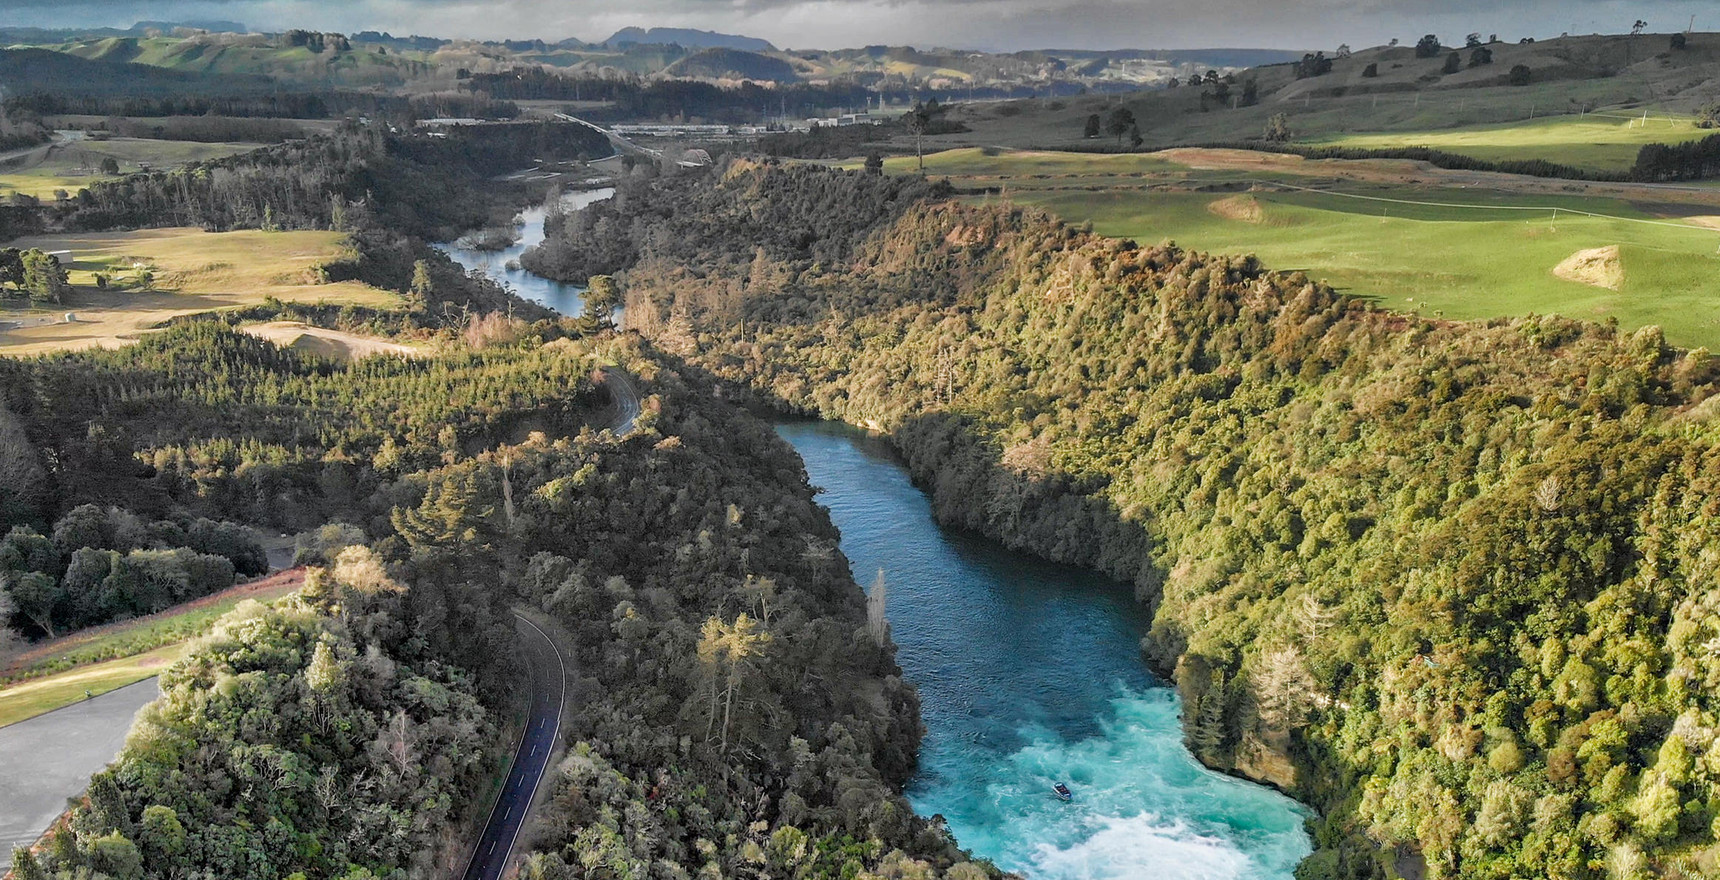 Aerial view of Huka Falls in Taupo, New Zealand